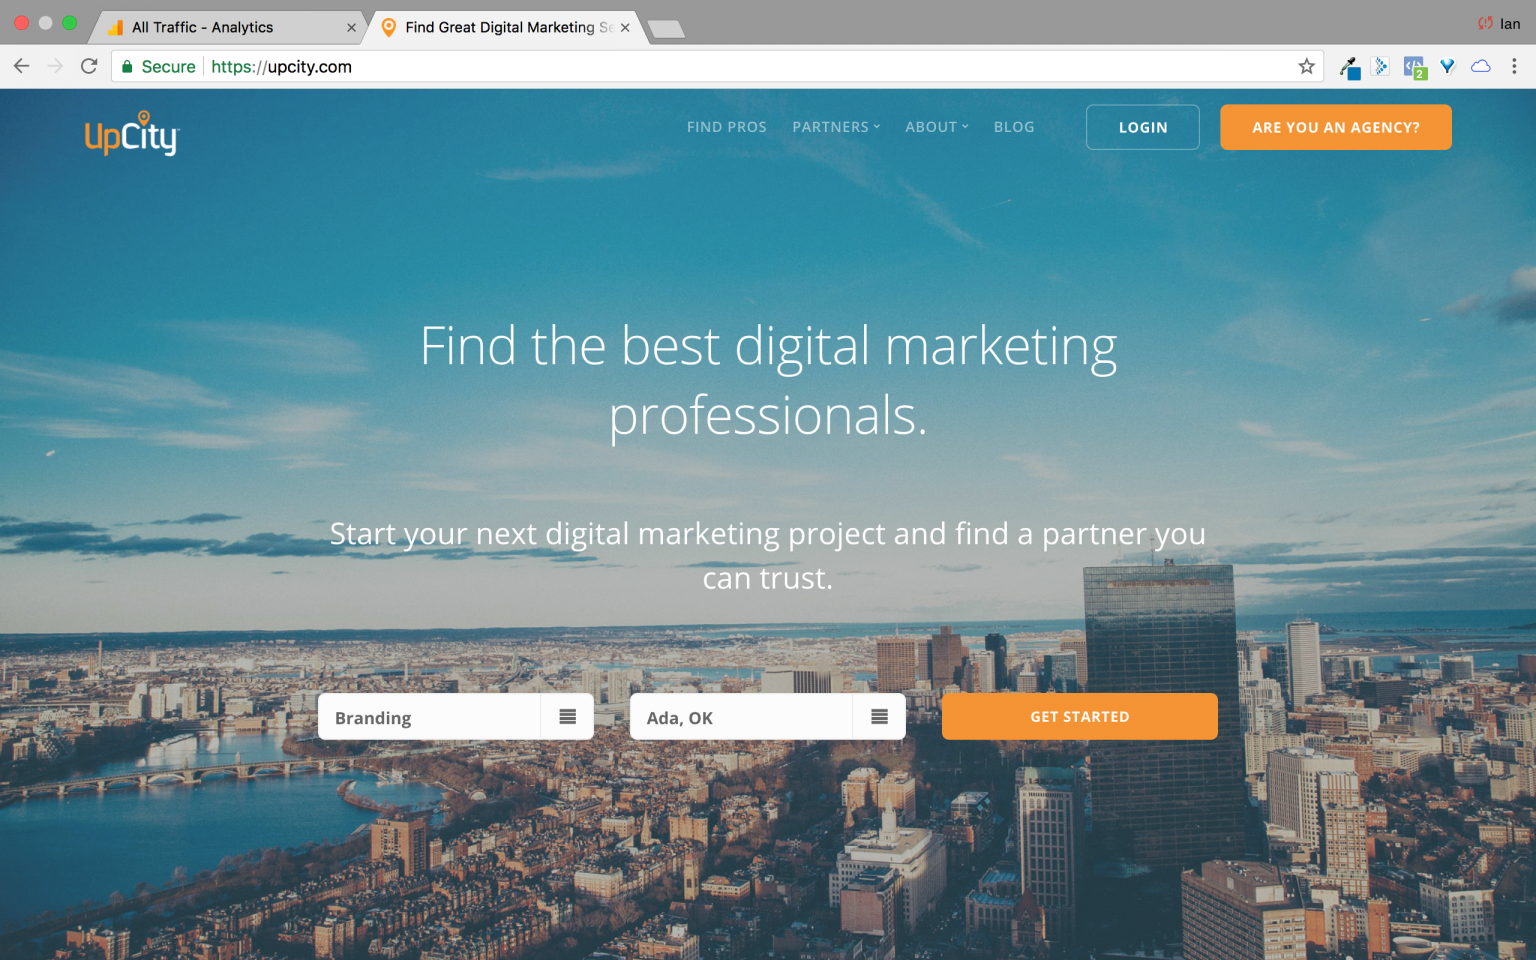 UpCity is a directory of digital marketing consultants and professionals